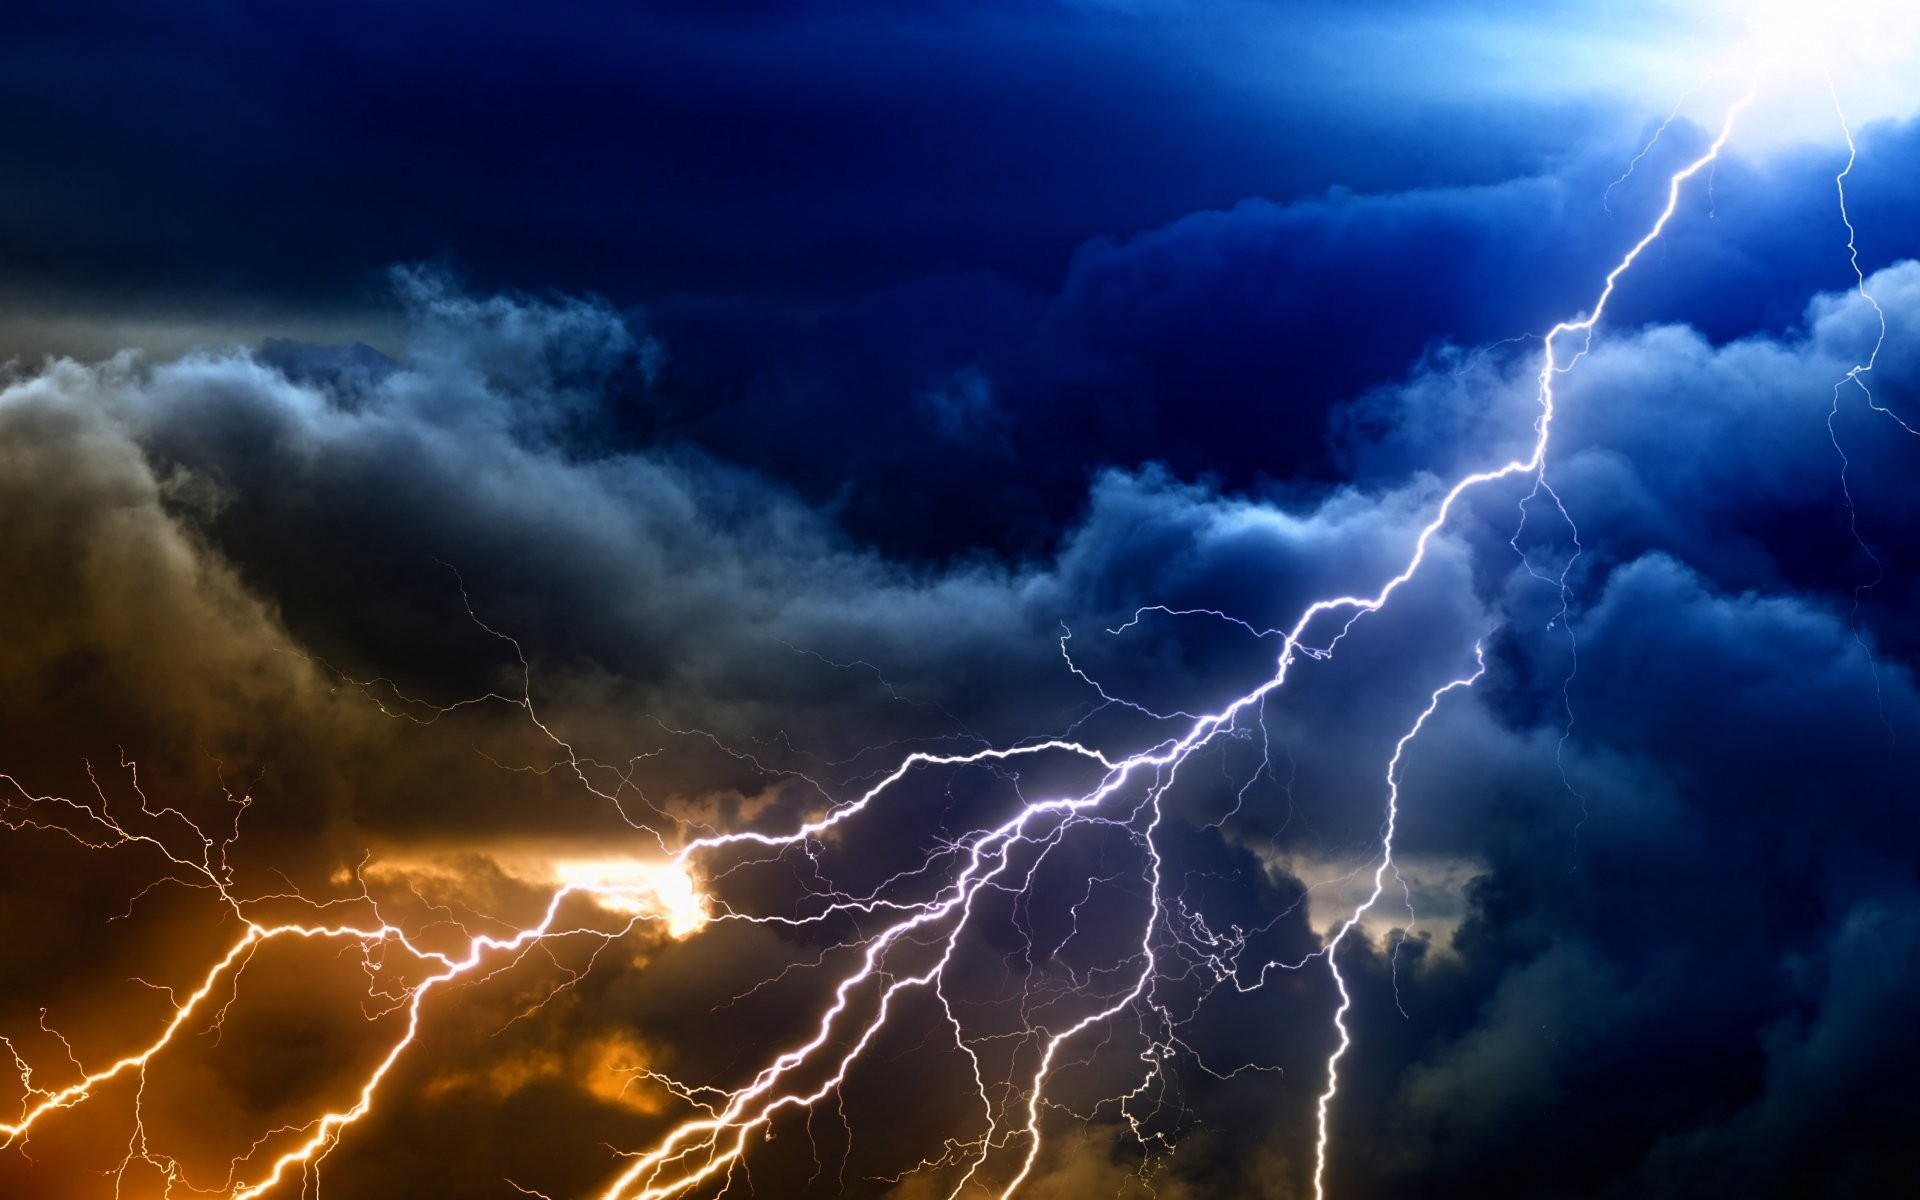 Res: 1920x1200, Lightning Sky Rain Nature Storm Clouds Thunderstorm Hd Wallpaper For  Android Phone